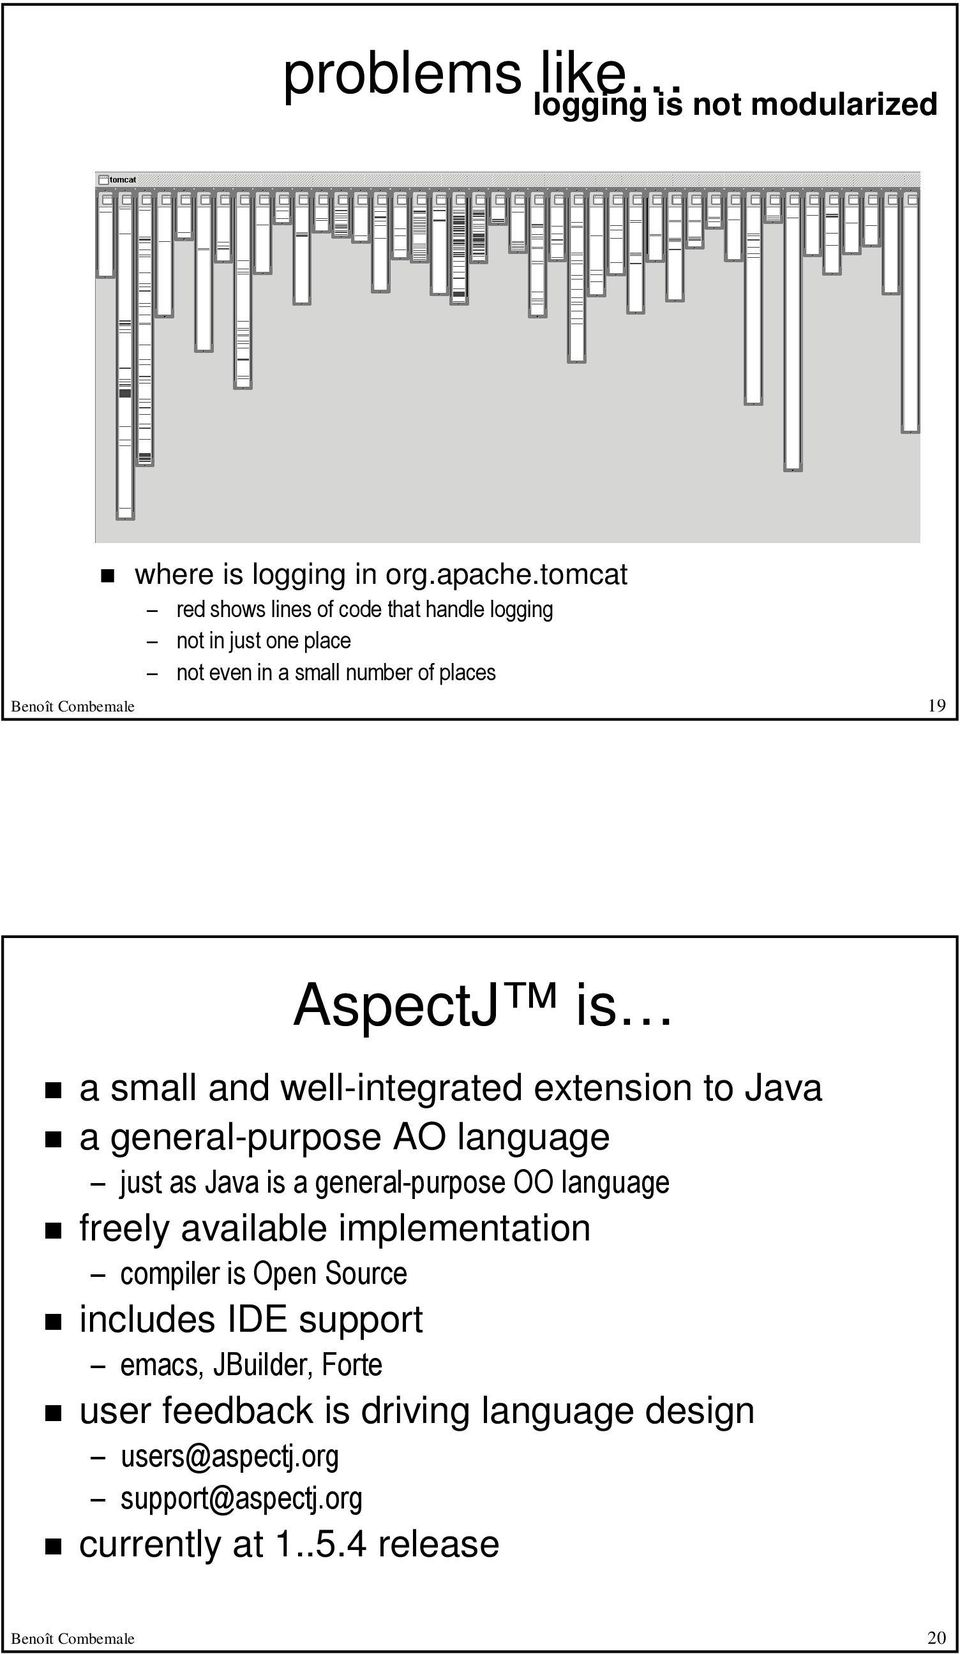 a small and well-integrated extension to Java a general-purpose AO language just as Java is a general-purpose OO language freely available